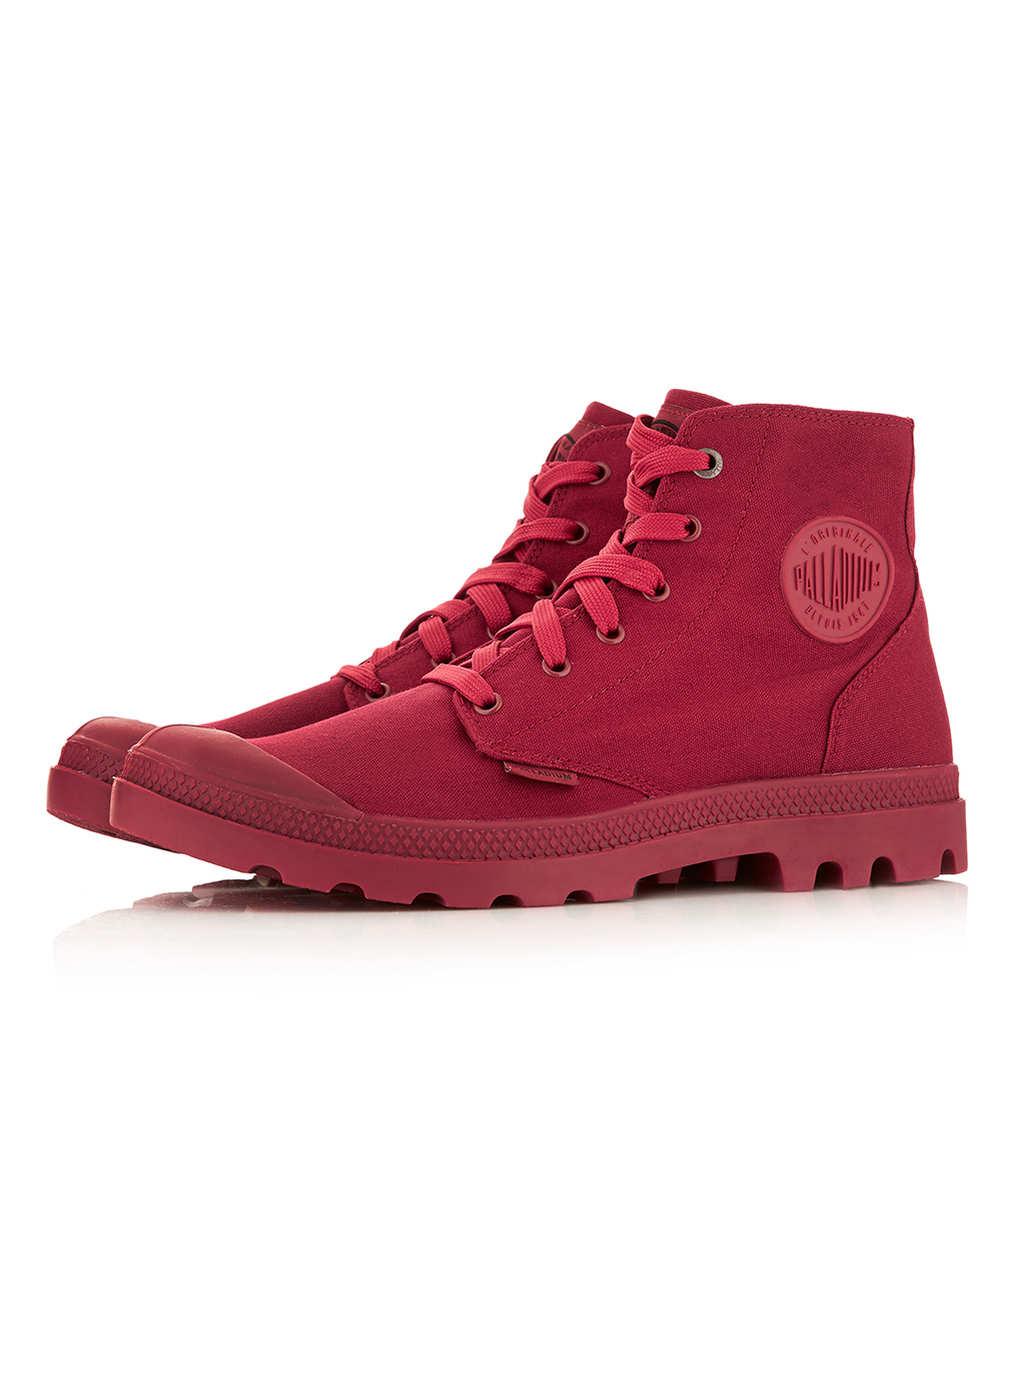 Palladium Mono Chrome Burgundy Boots In Red For Men Lyst